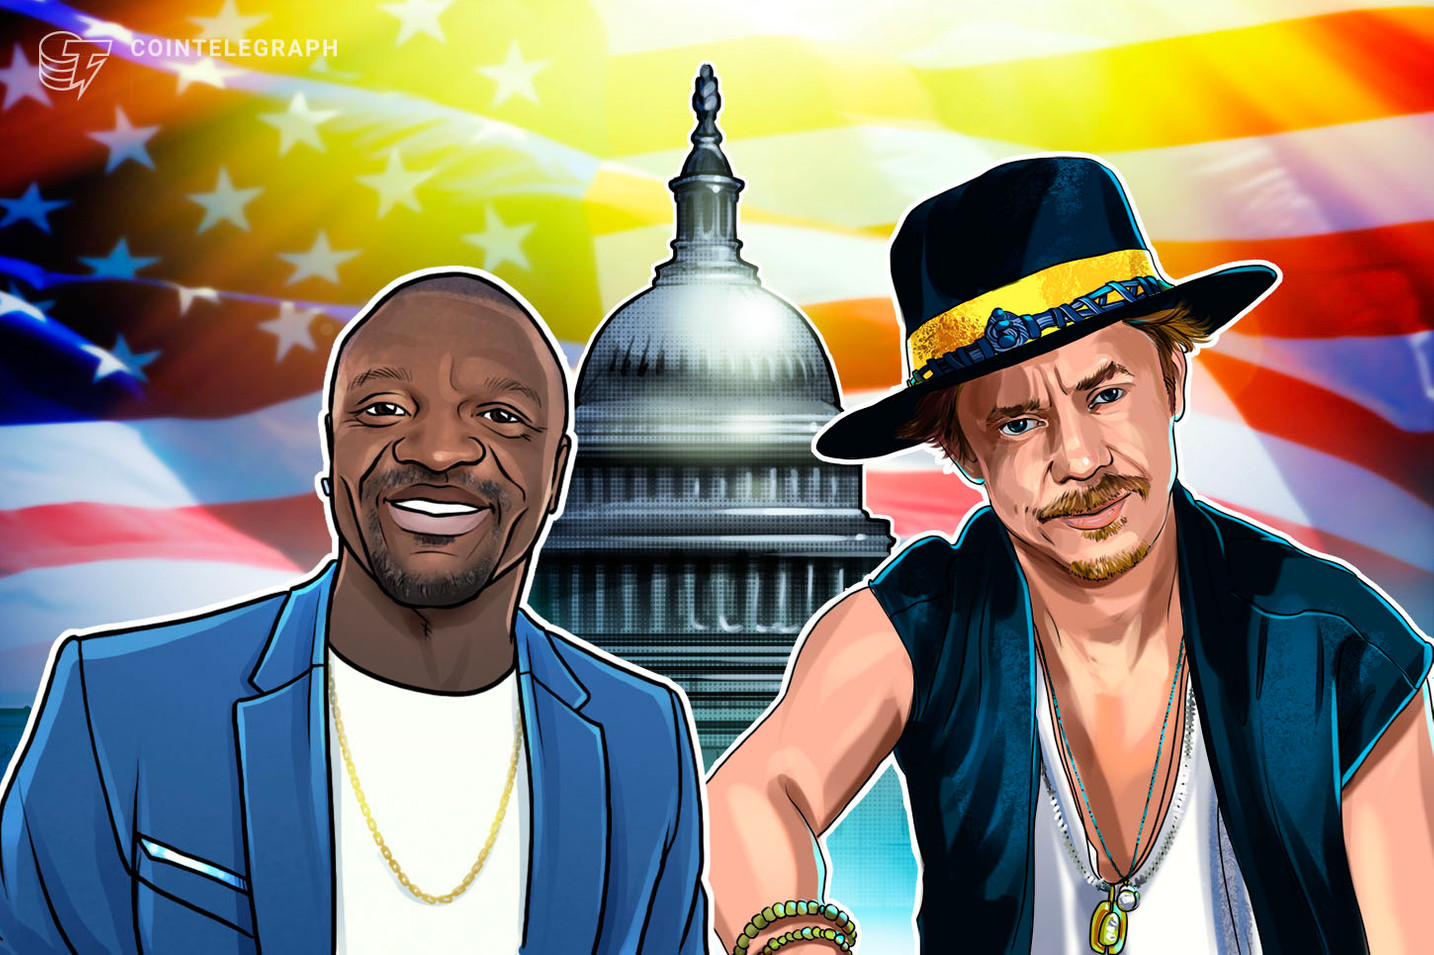 Akon joins Brock Pierce's presidential campaign as chief strategist